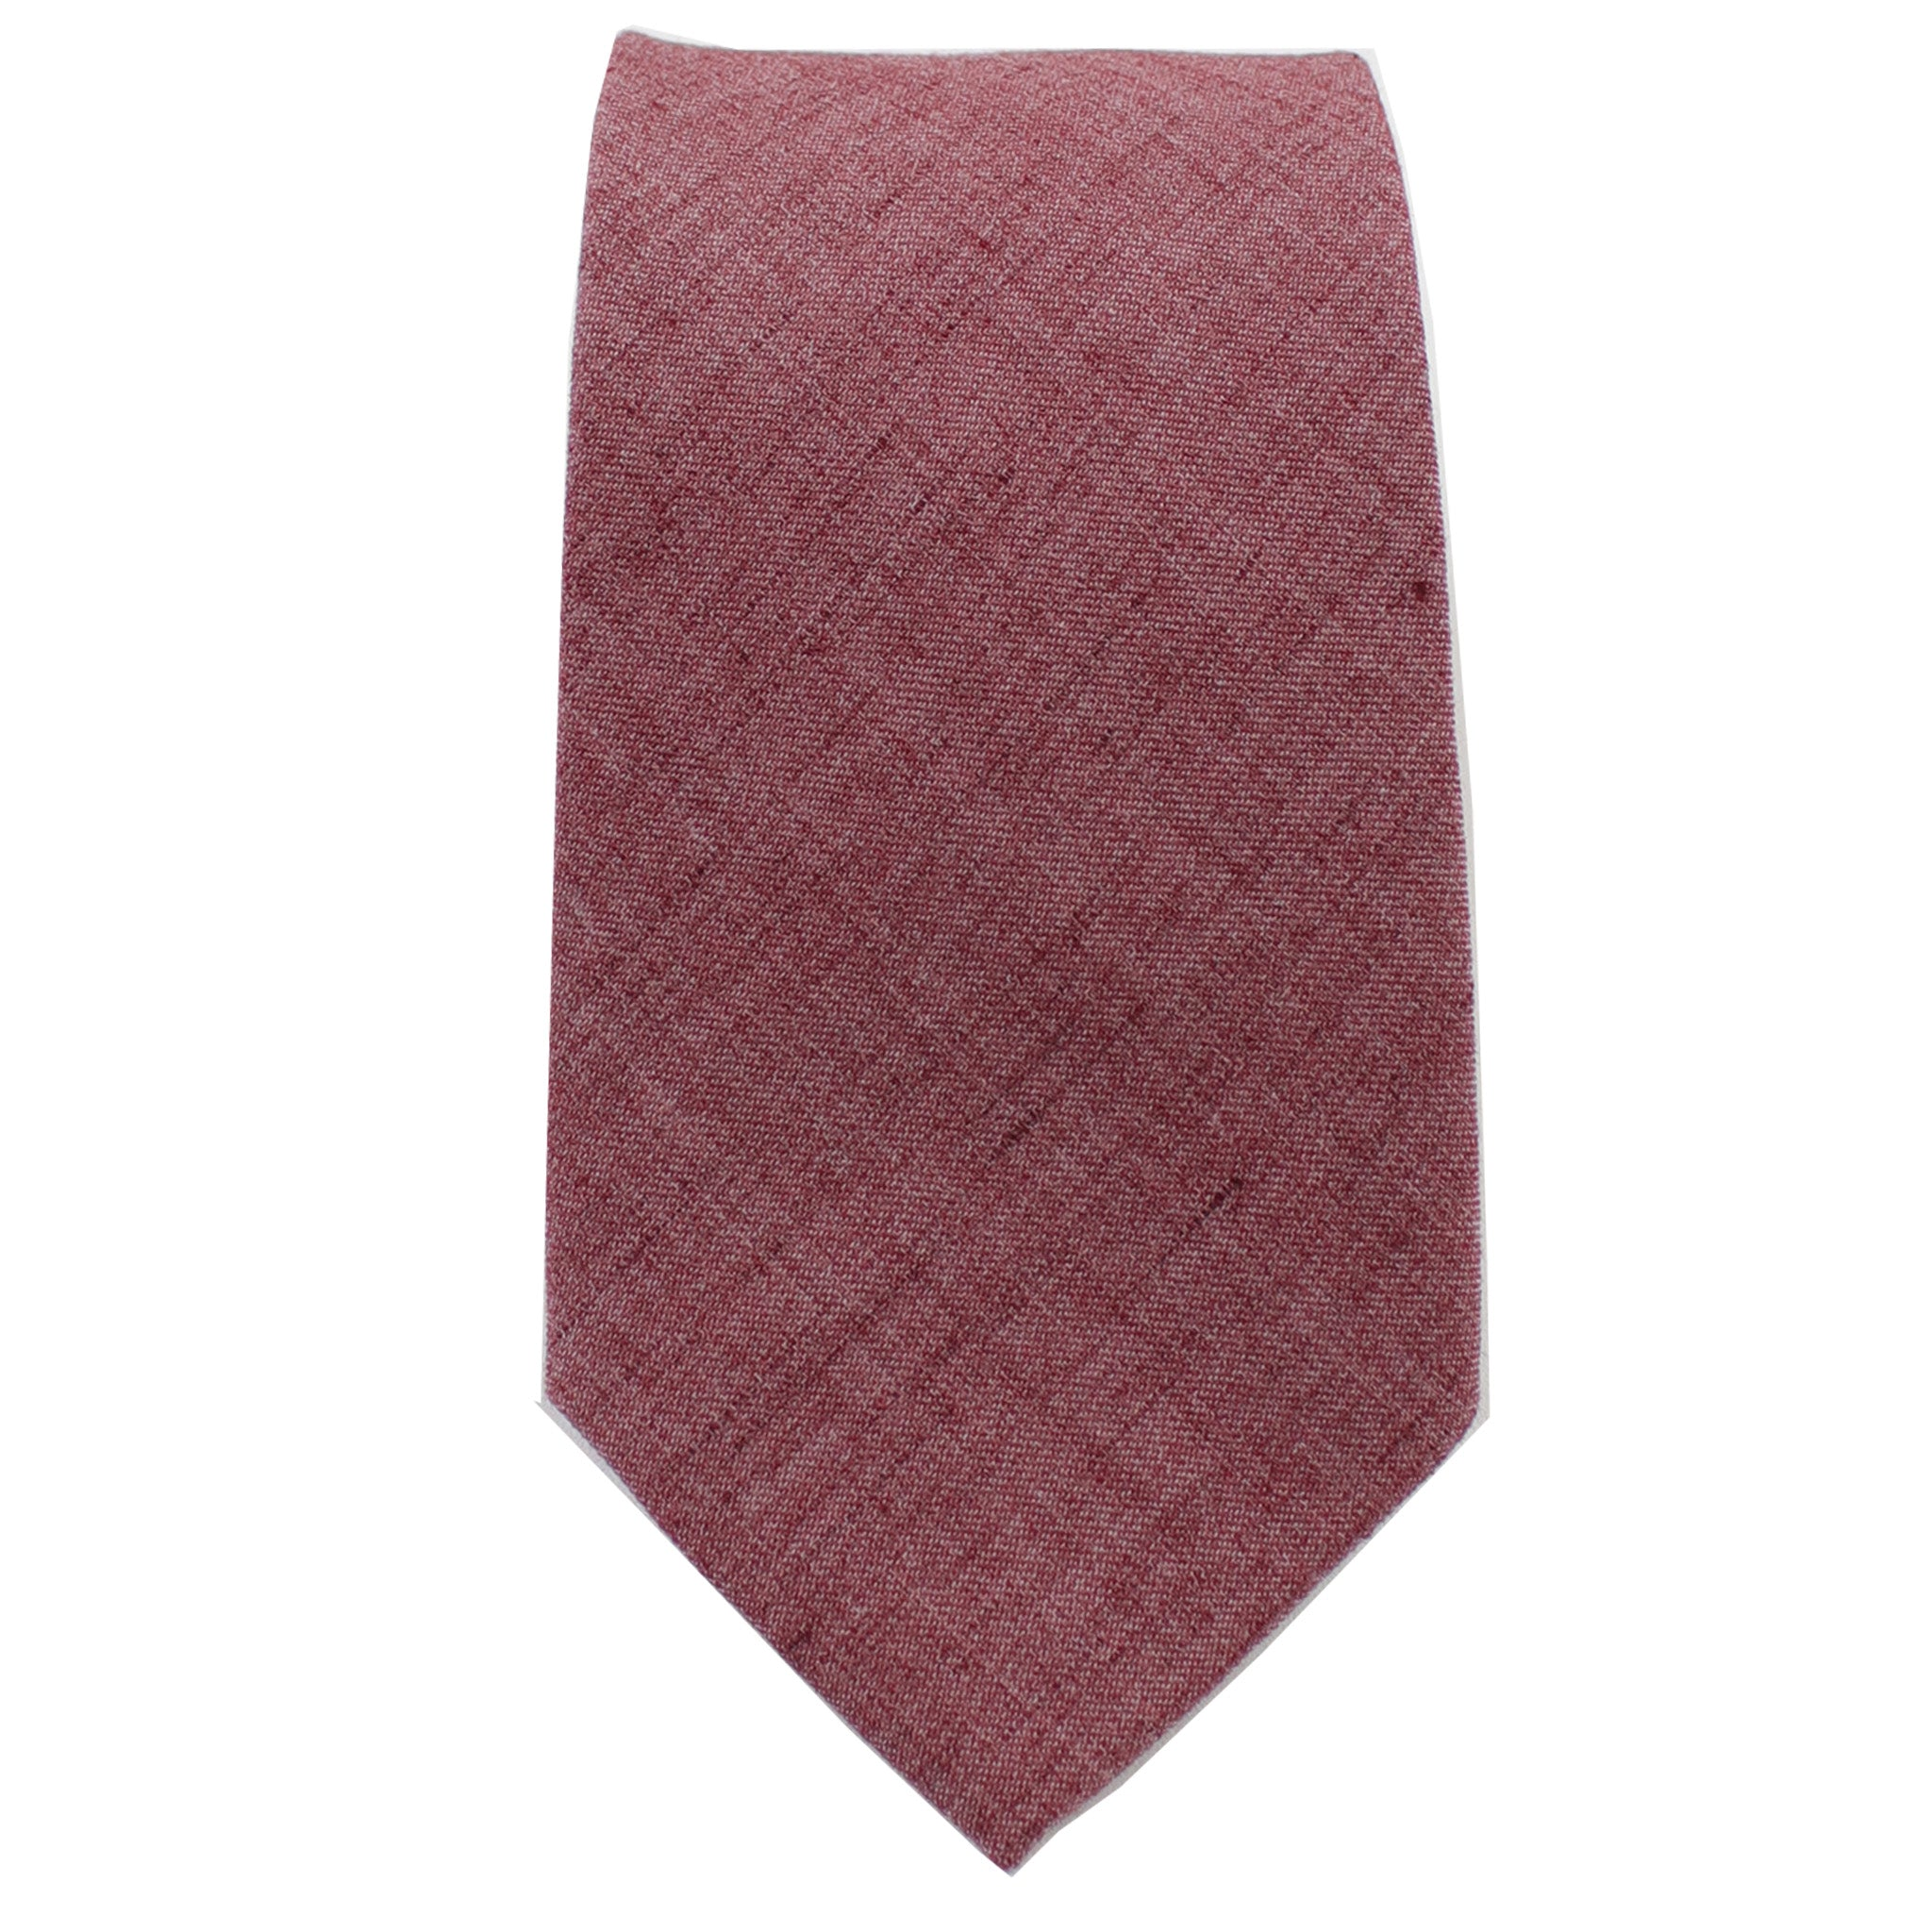 Lightweight Red Tie from DIBI